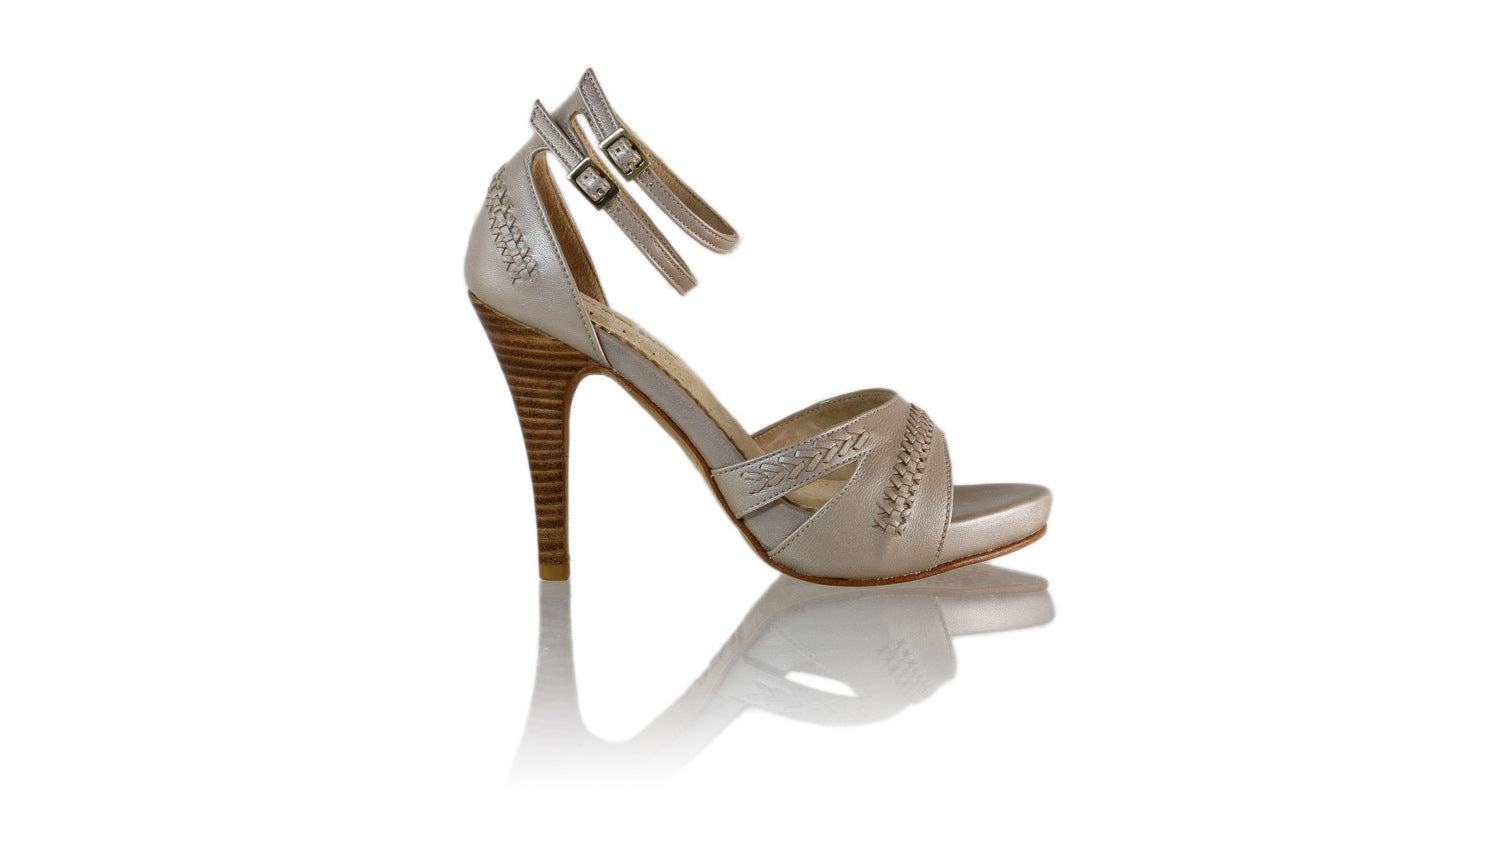 Leather-shoes-Rin 115mm SH PF - Cream Metallic-pumps highheel-NILUH DJELANTIK-NILUH DJELANTIK